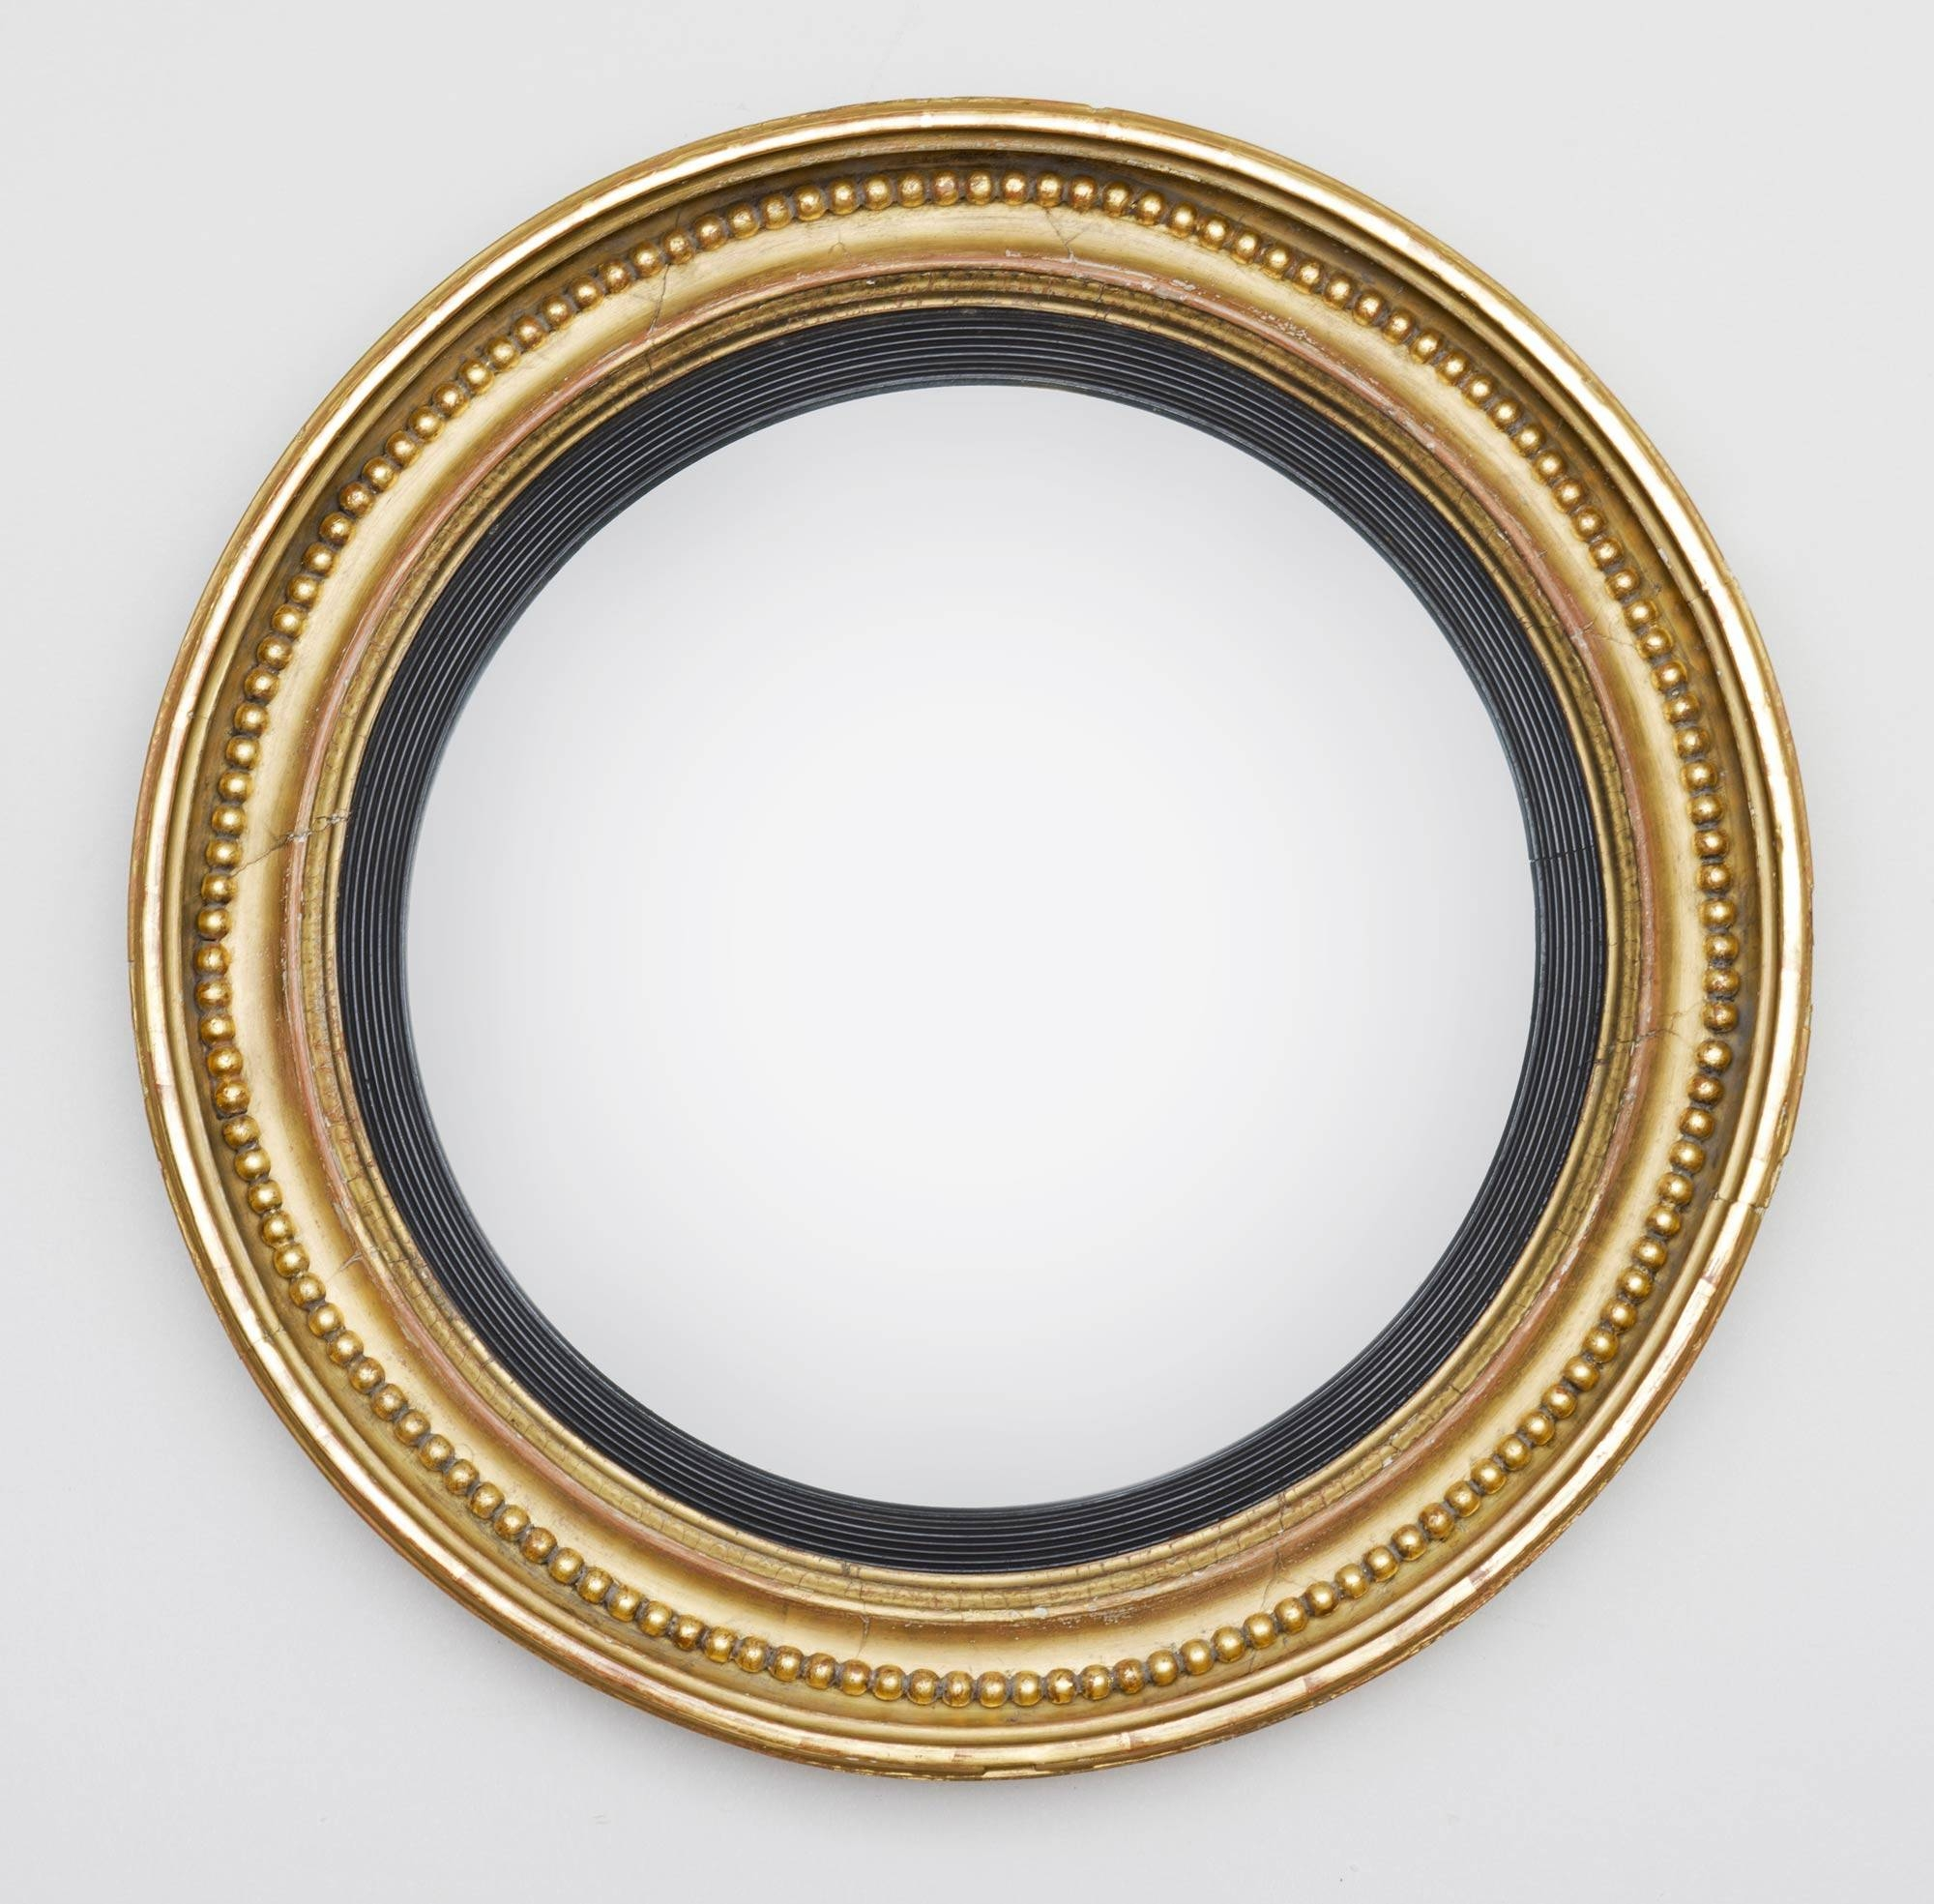 Regency Giltwood Antique Convex Mirror | Antique Giltwood Mirrors intended for Antique Convex Mirrors (Image 14 of 15)